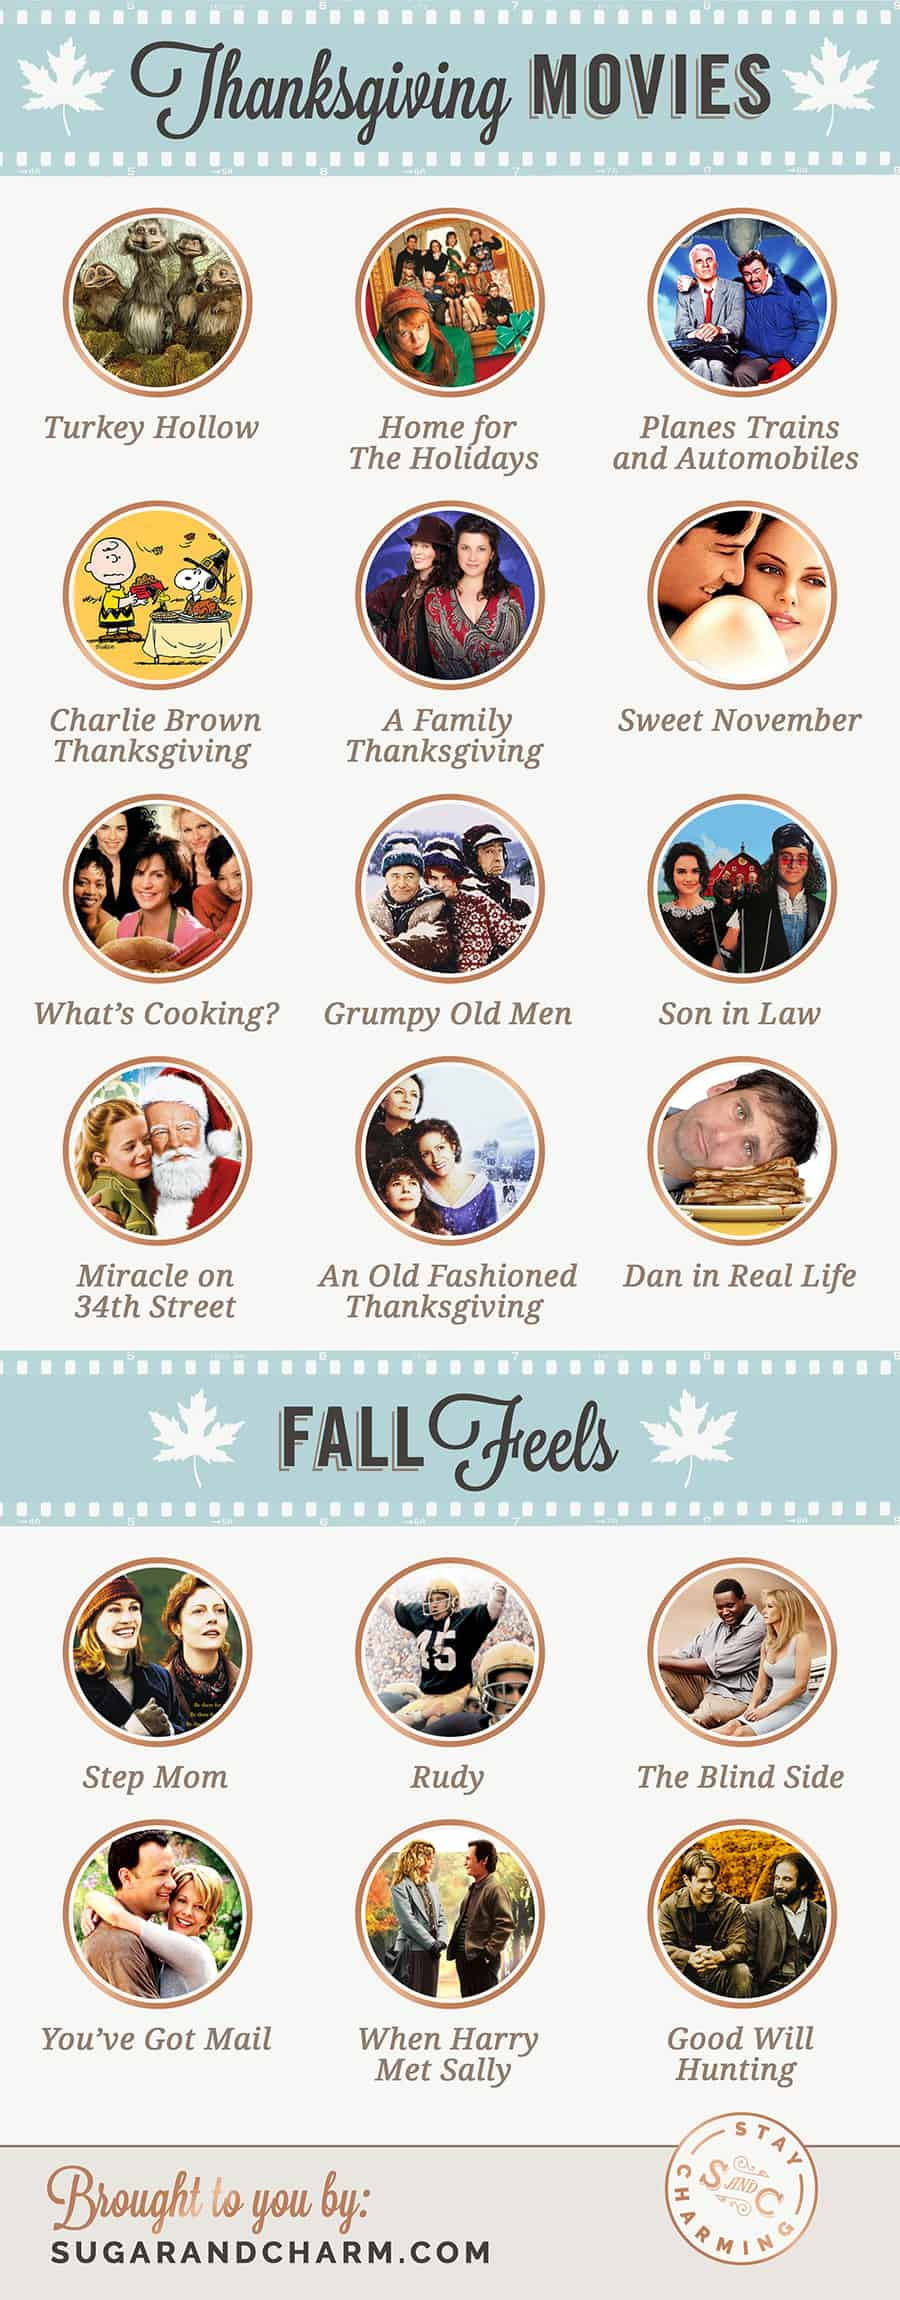 List with photos of Thanksgiving movies.